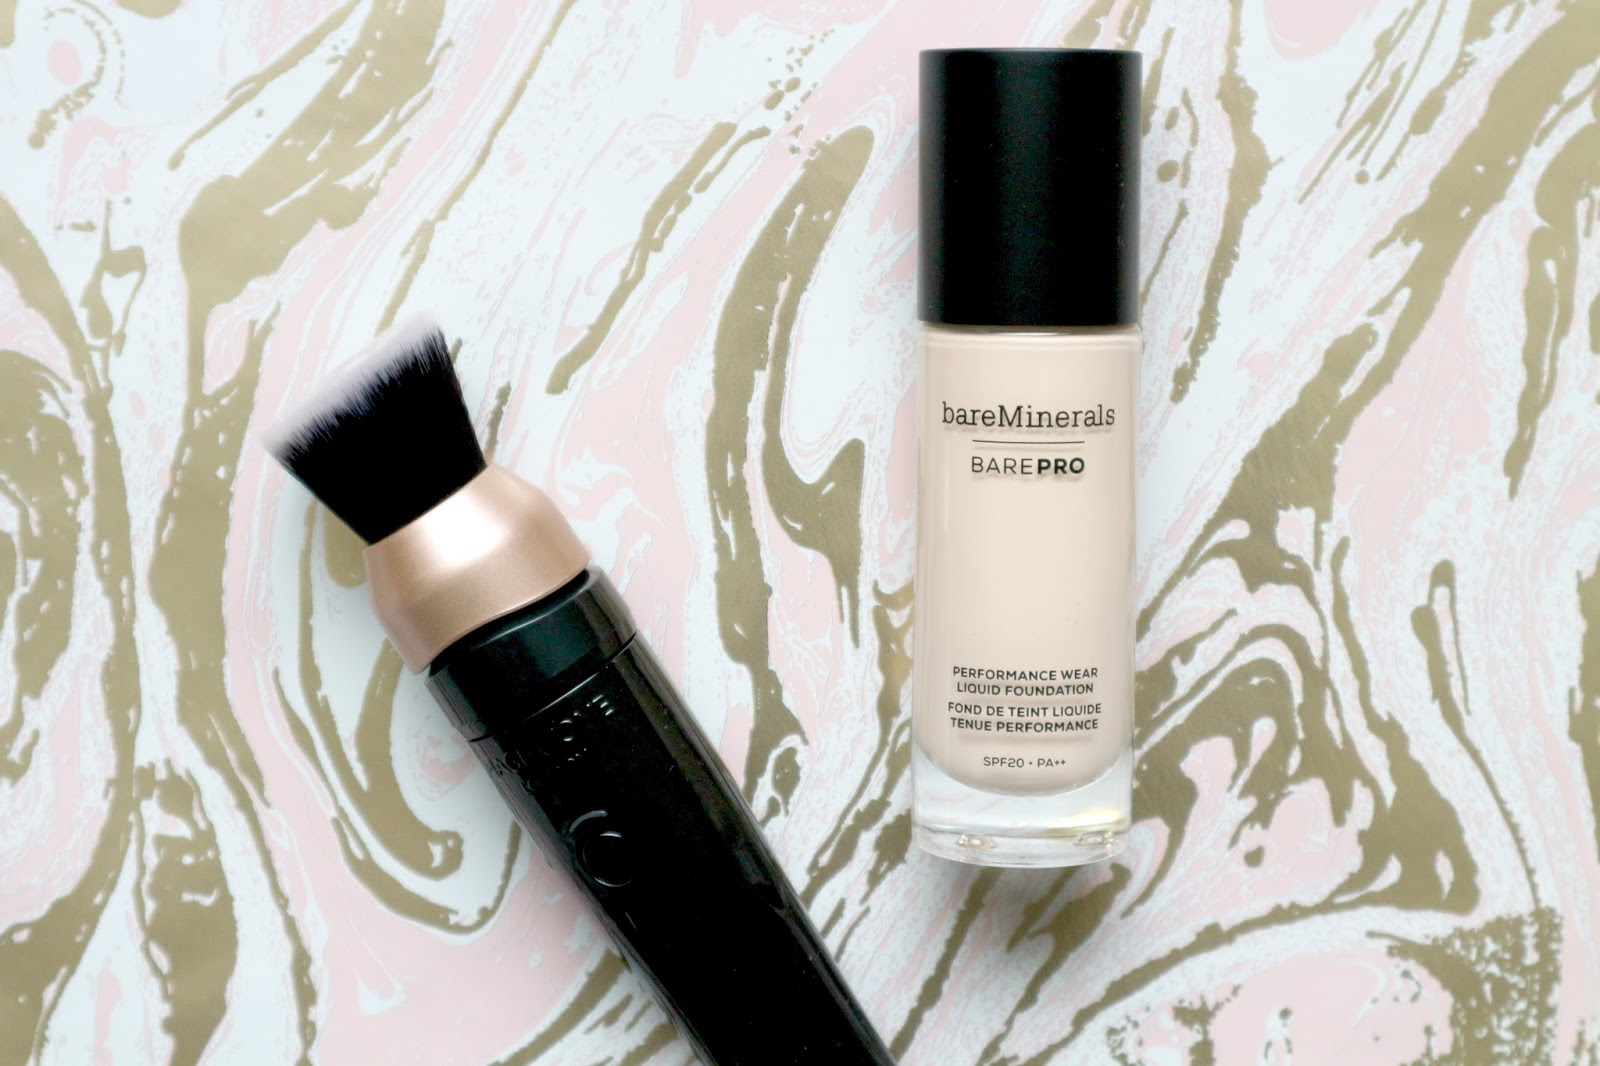 bareminerals barepro foundation review